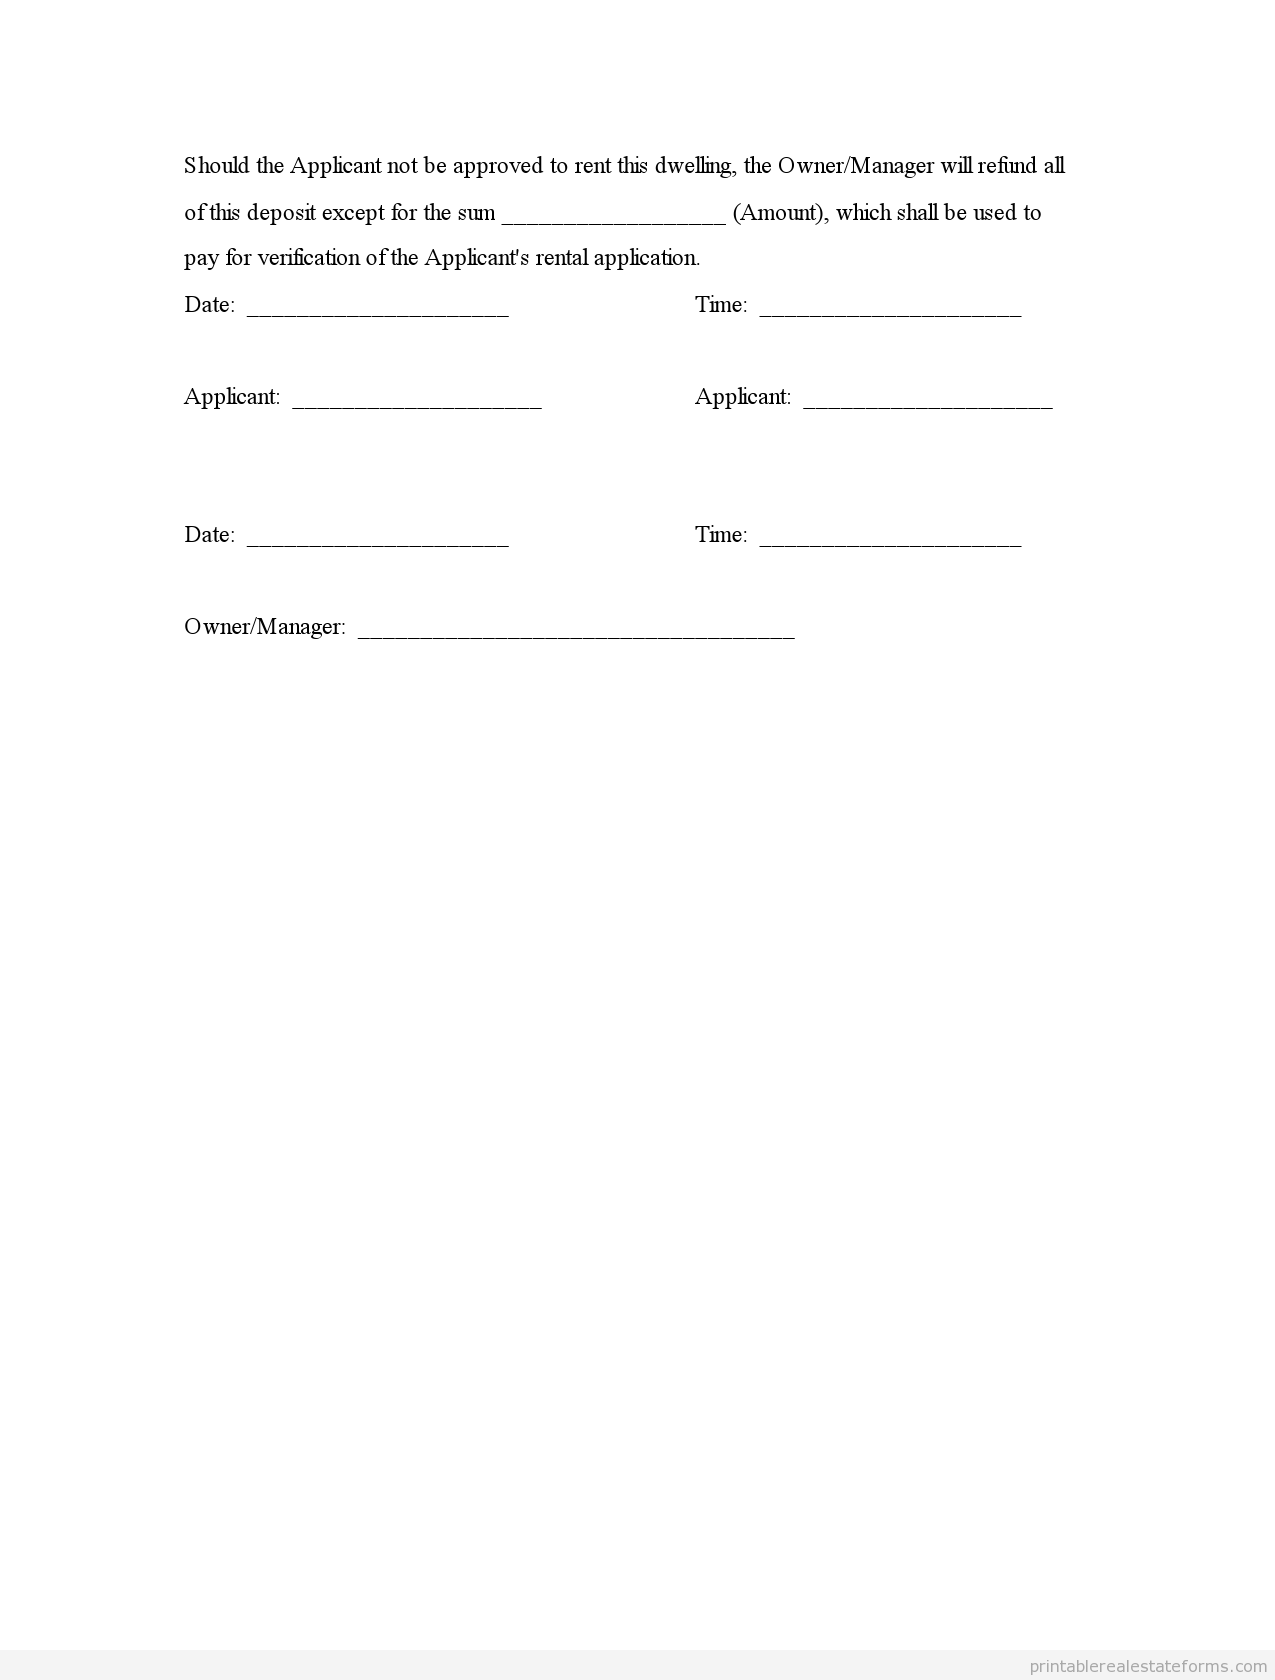 sample printable deposit receipt and agreement form printable sample printable deposit receipt and agreement form